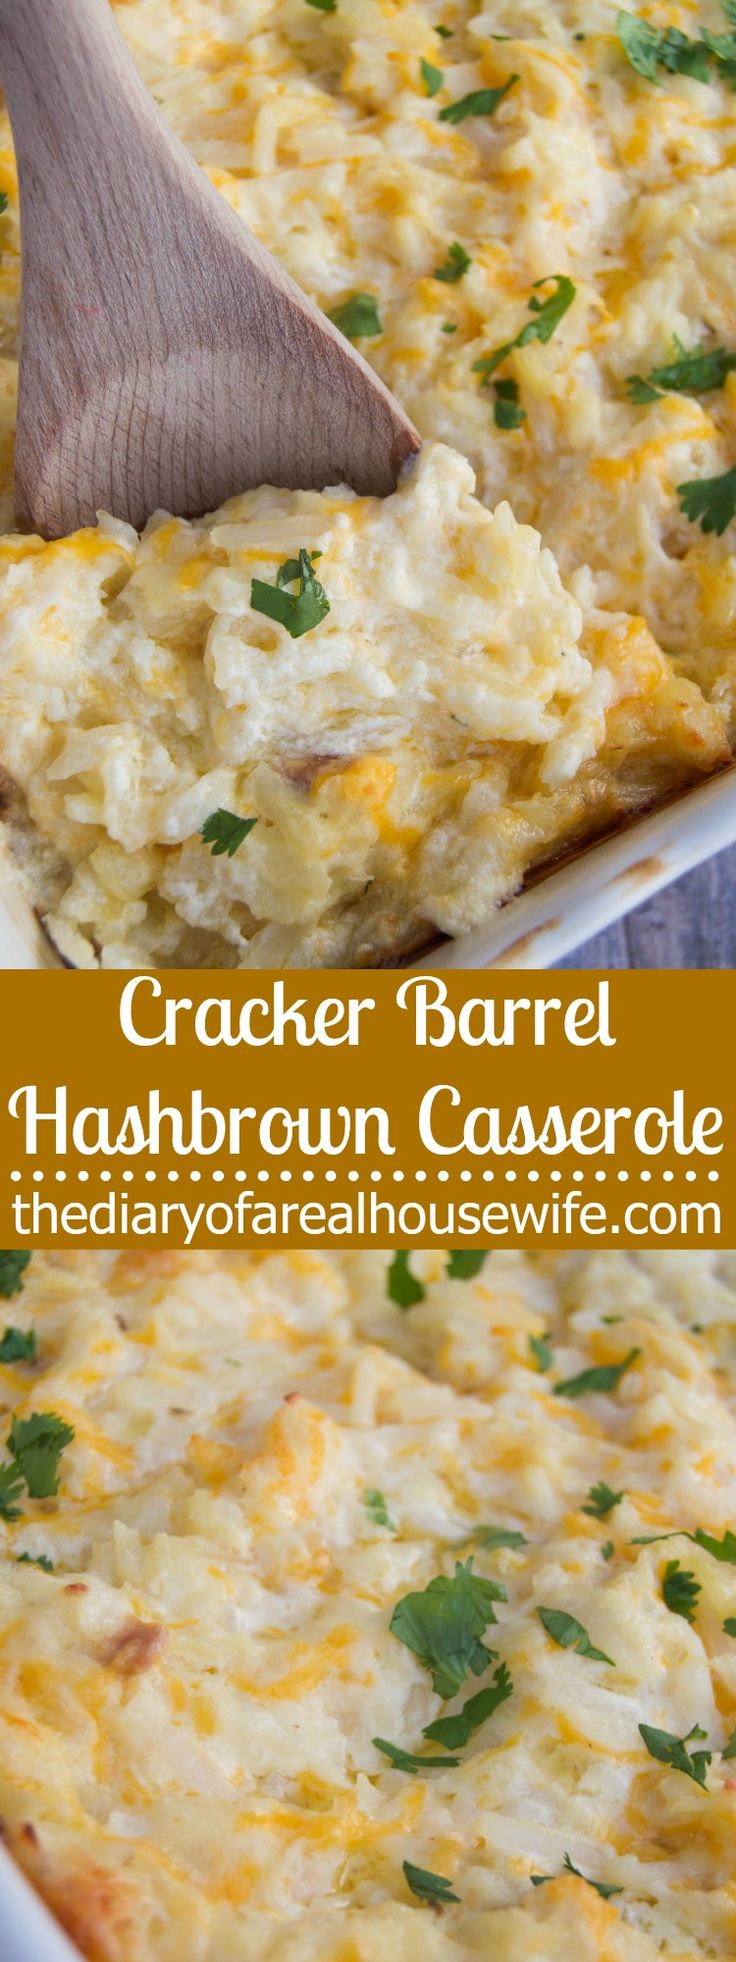 Cracker Barrel Hashbrown Casserole. This is a MUST TRY recipe. One of my all time favorites.